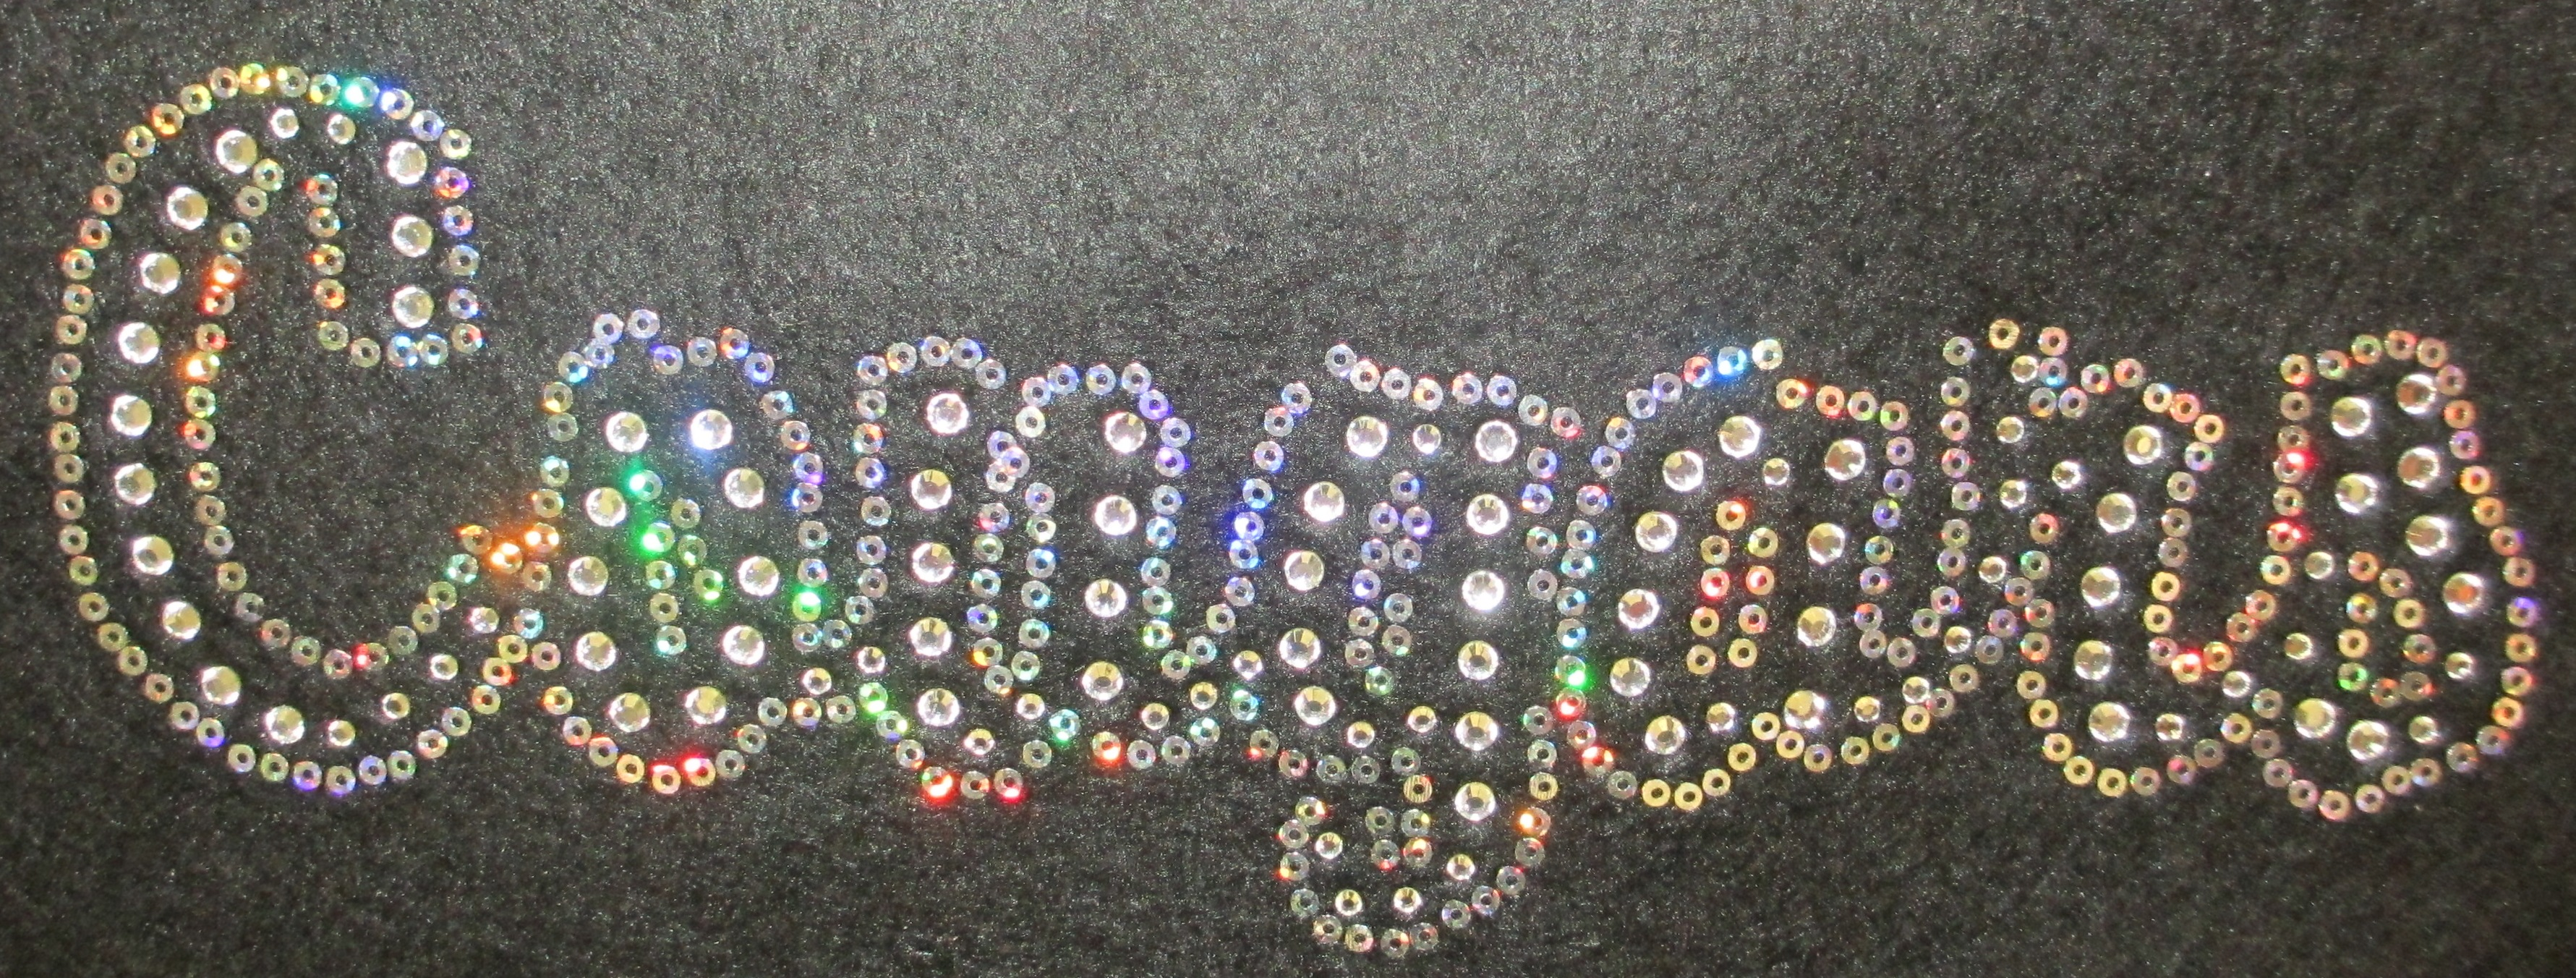 Cougars Rhinestone and Sequin Transfer Combo (1)